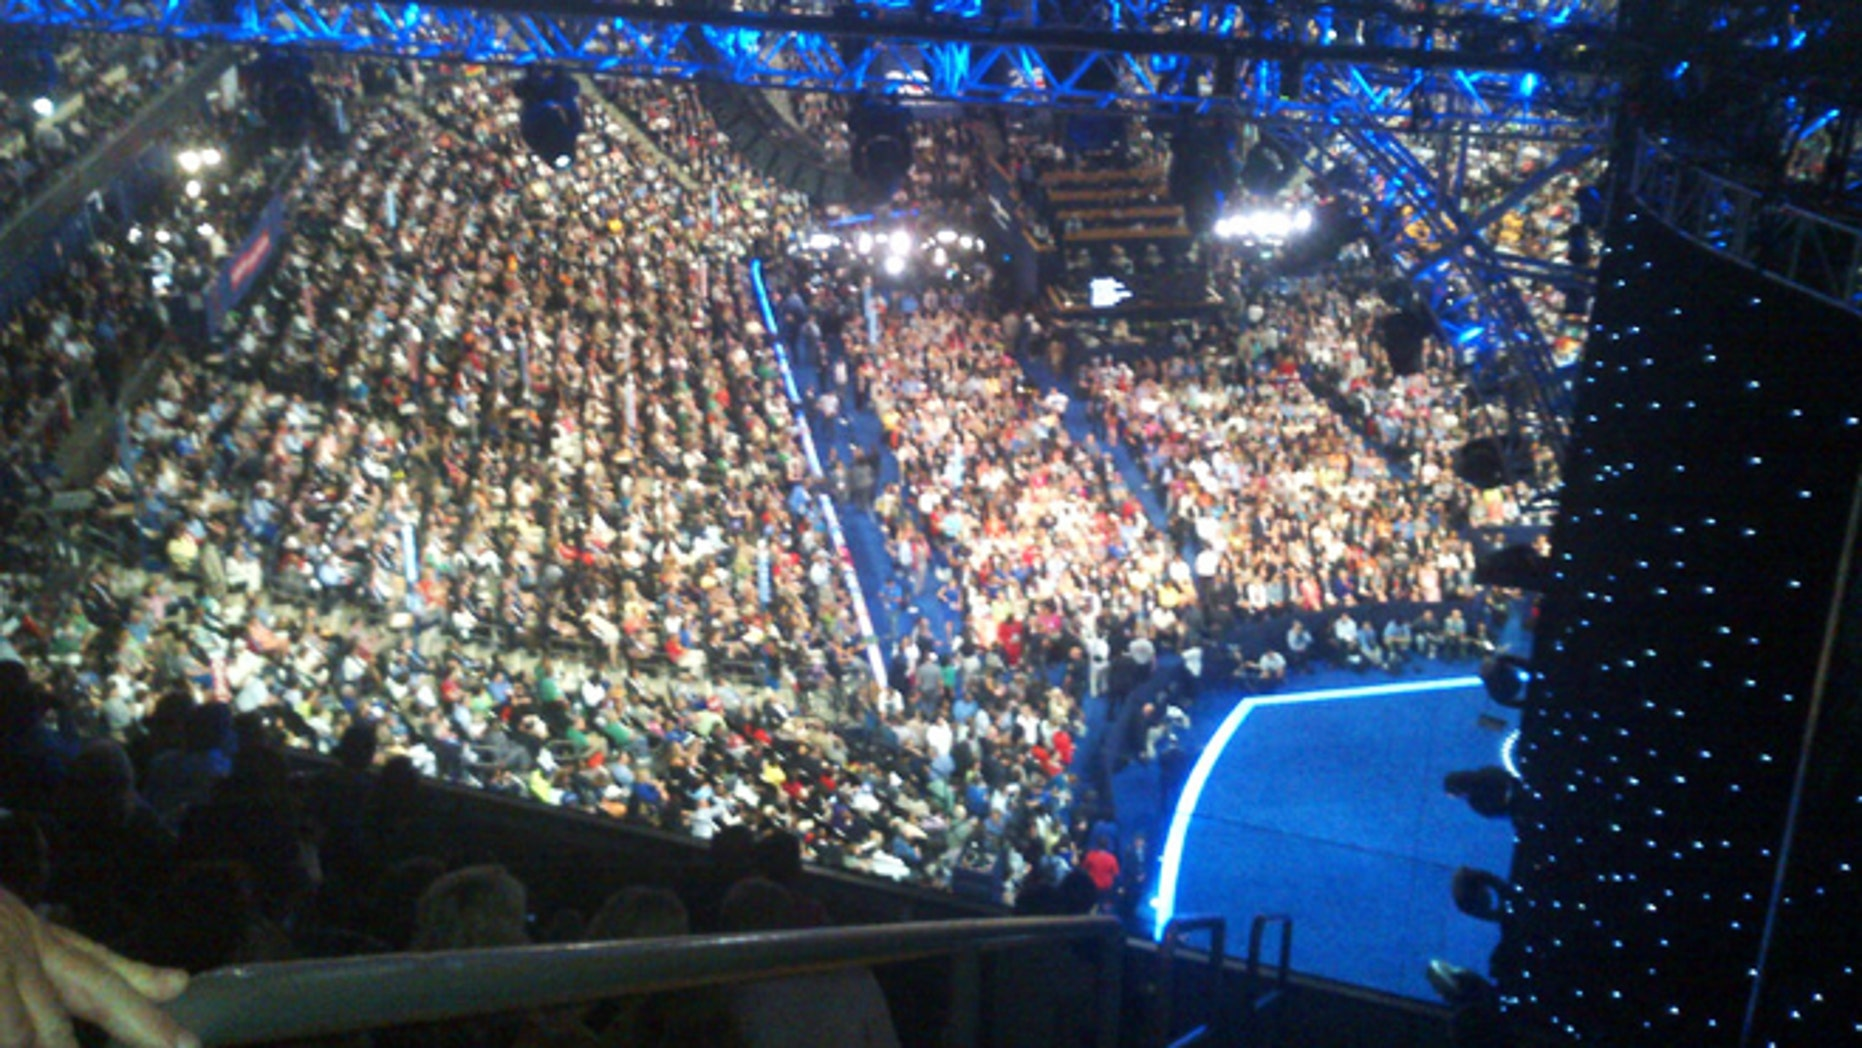 Sept. 6, 2012: Delegates fill the convention hall ahead of President Obama's acceptance speech.